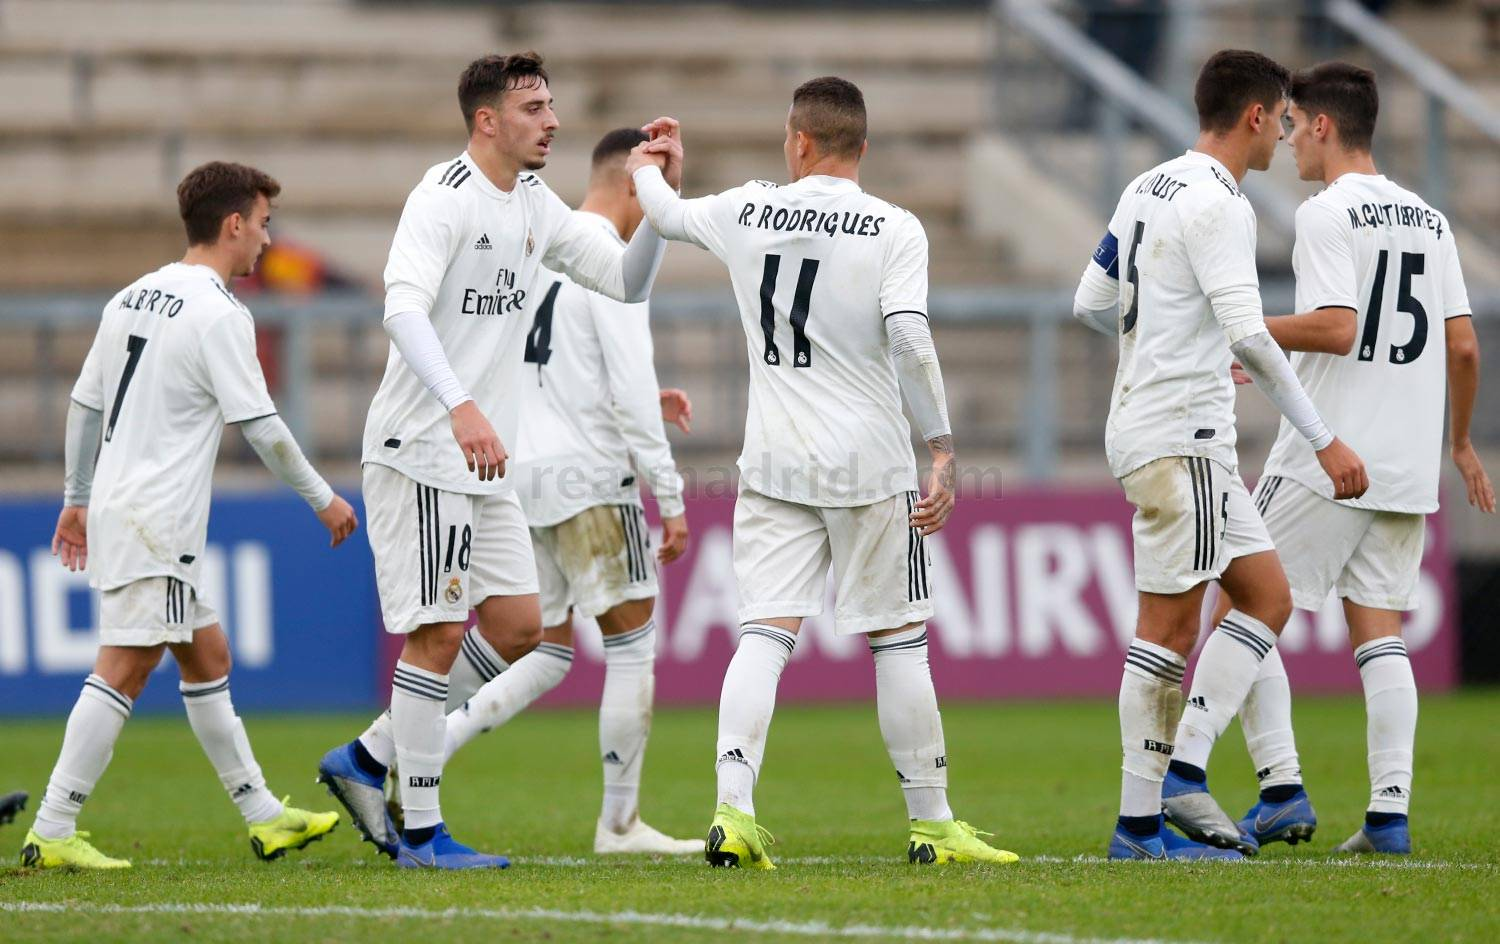 Real Madrid - Roma - Juvenil A - 27-11-2018